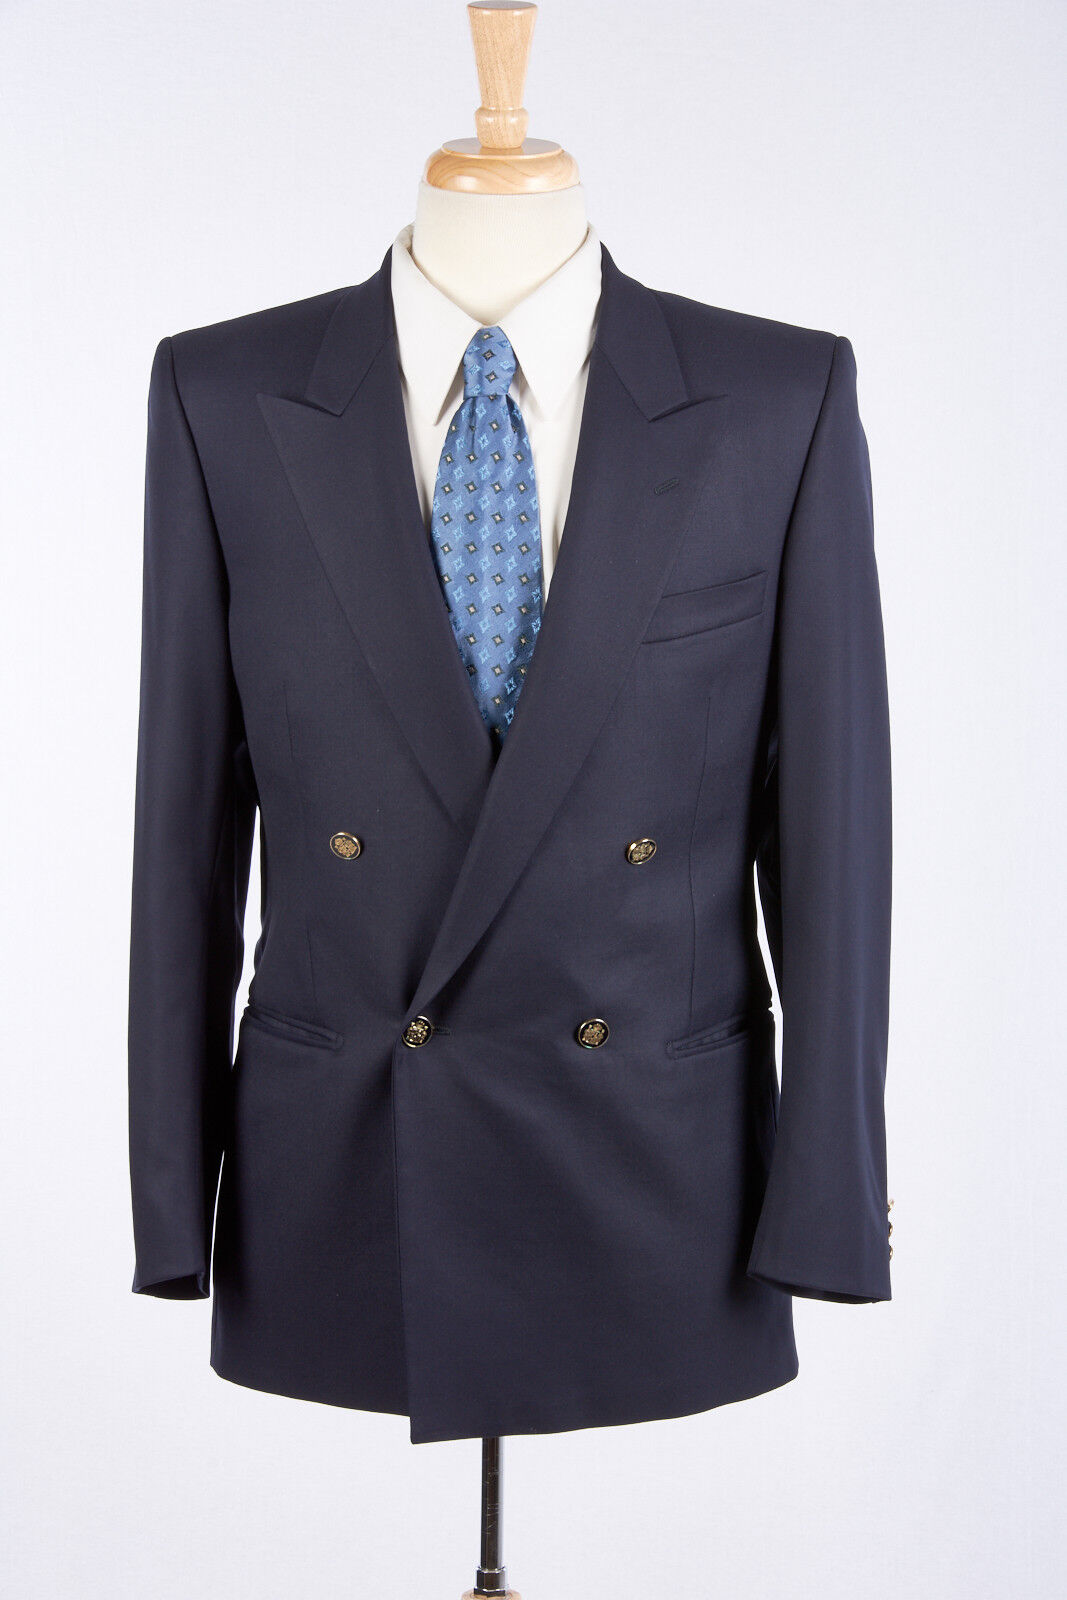 Herren Navy Blau Blazer 38 R Double Breasted by LUBIAM Logo Buttons Unvented